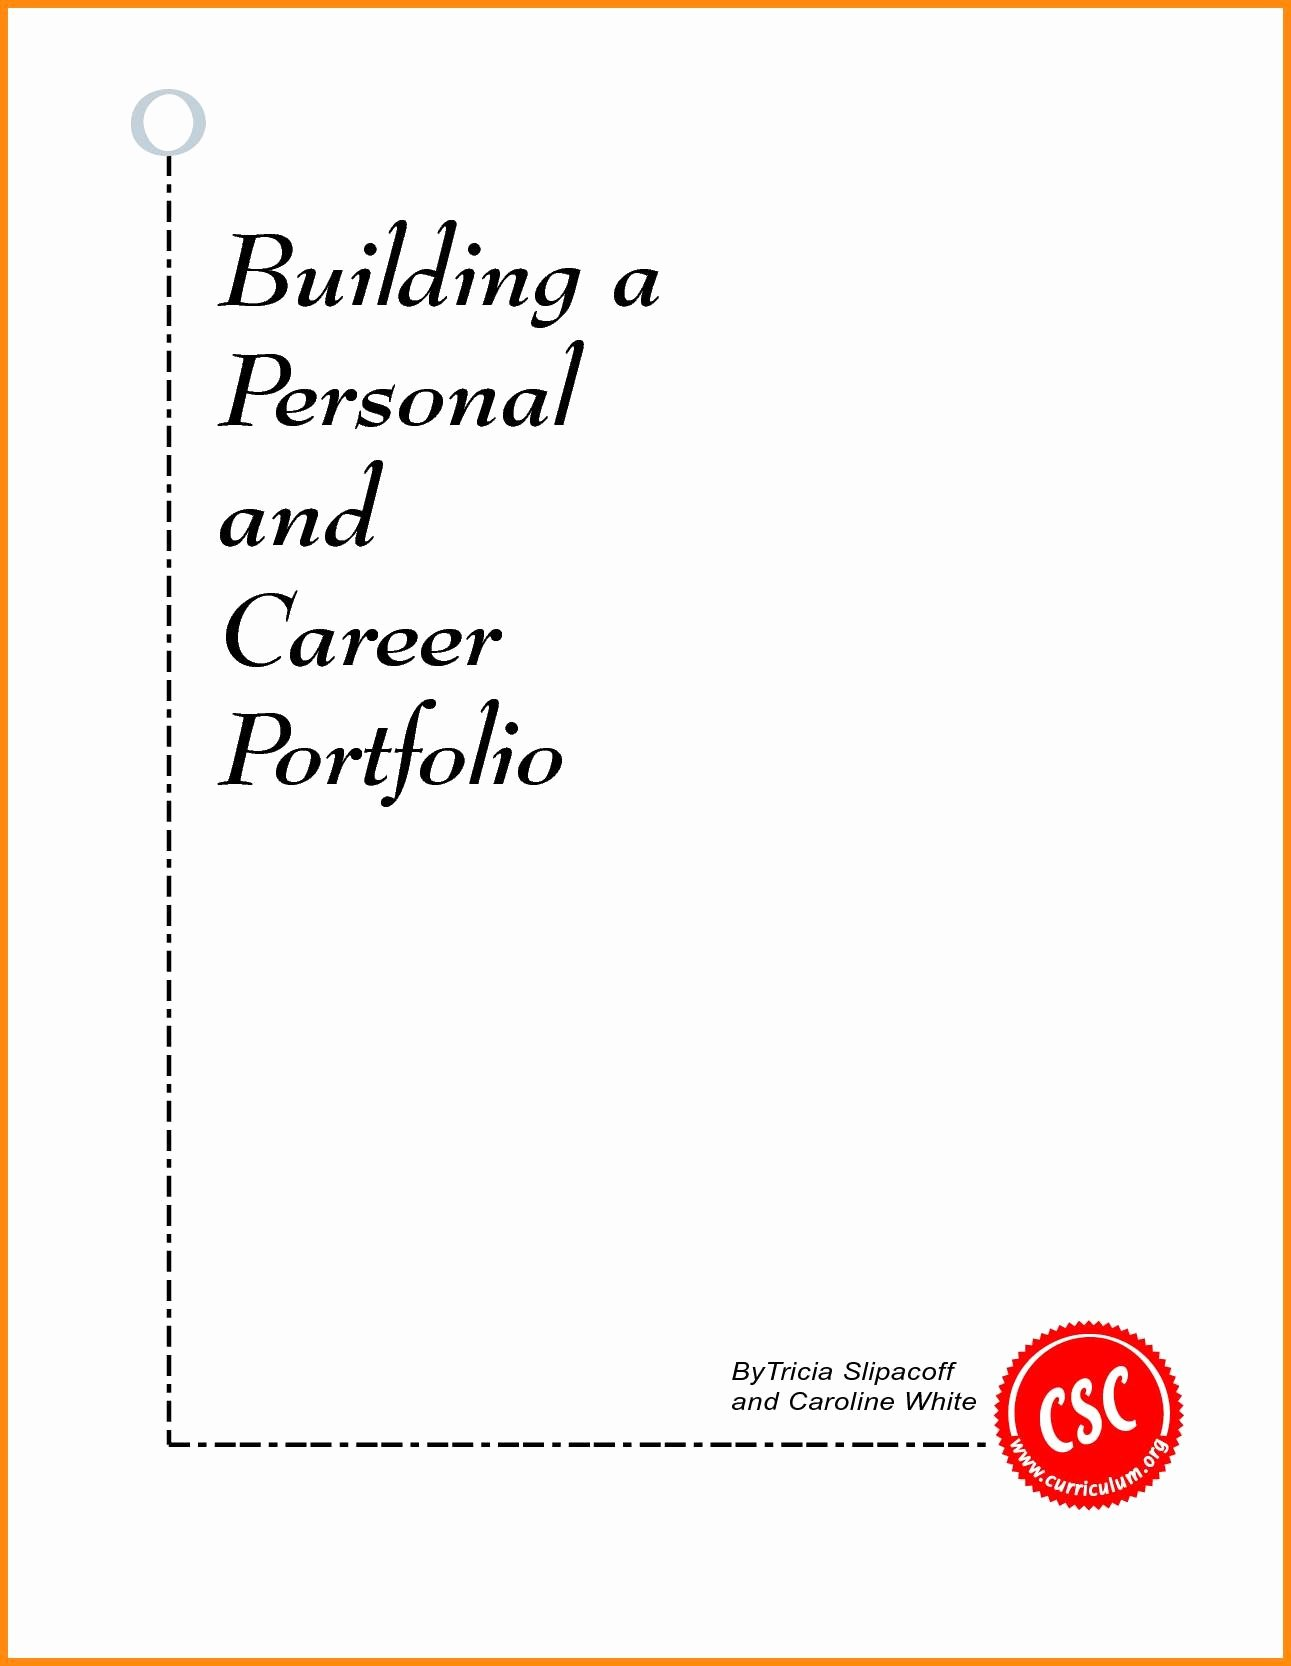 Portfolio Title Page Template Best Of Sample Cover Page for Career Portfolio Best 5 Career